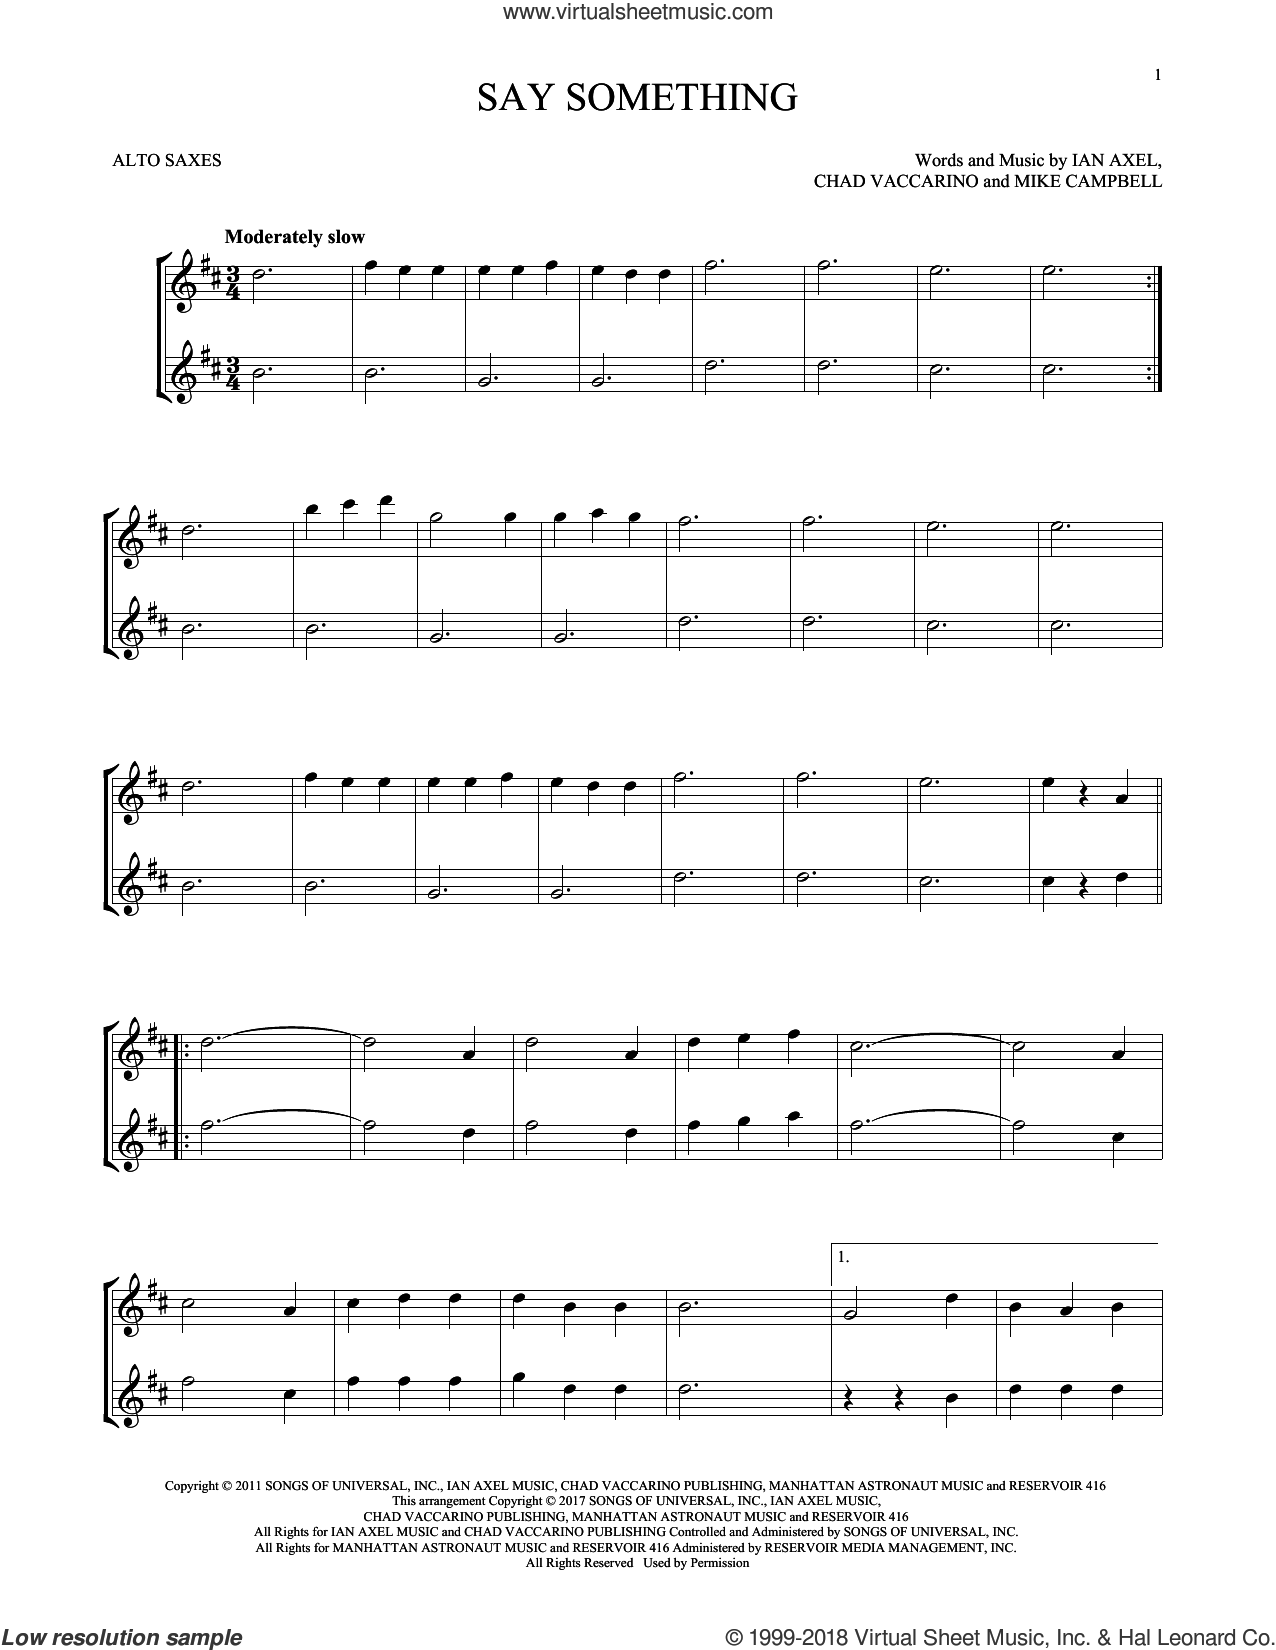 Say Something sheet music for two alto saxophones (duets) by A Great Big World, Chad Vaccarino, Ian Axel and Mike Campbell, intermediate skill level